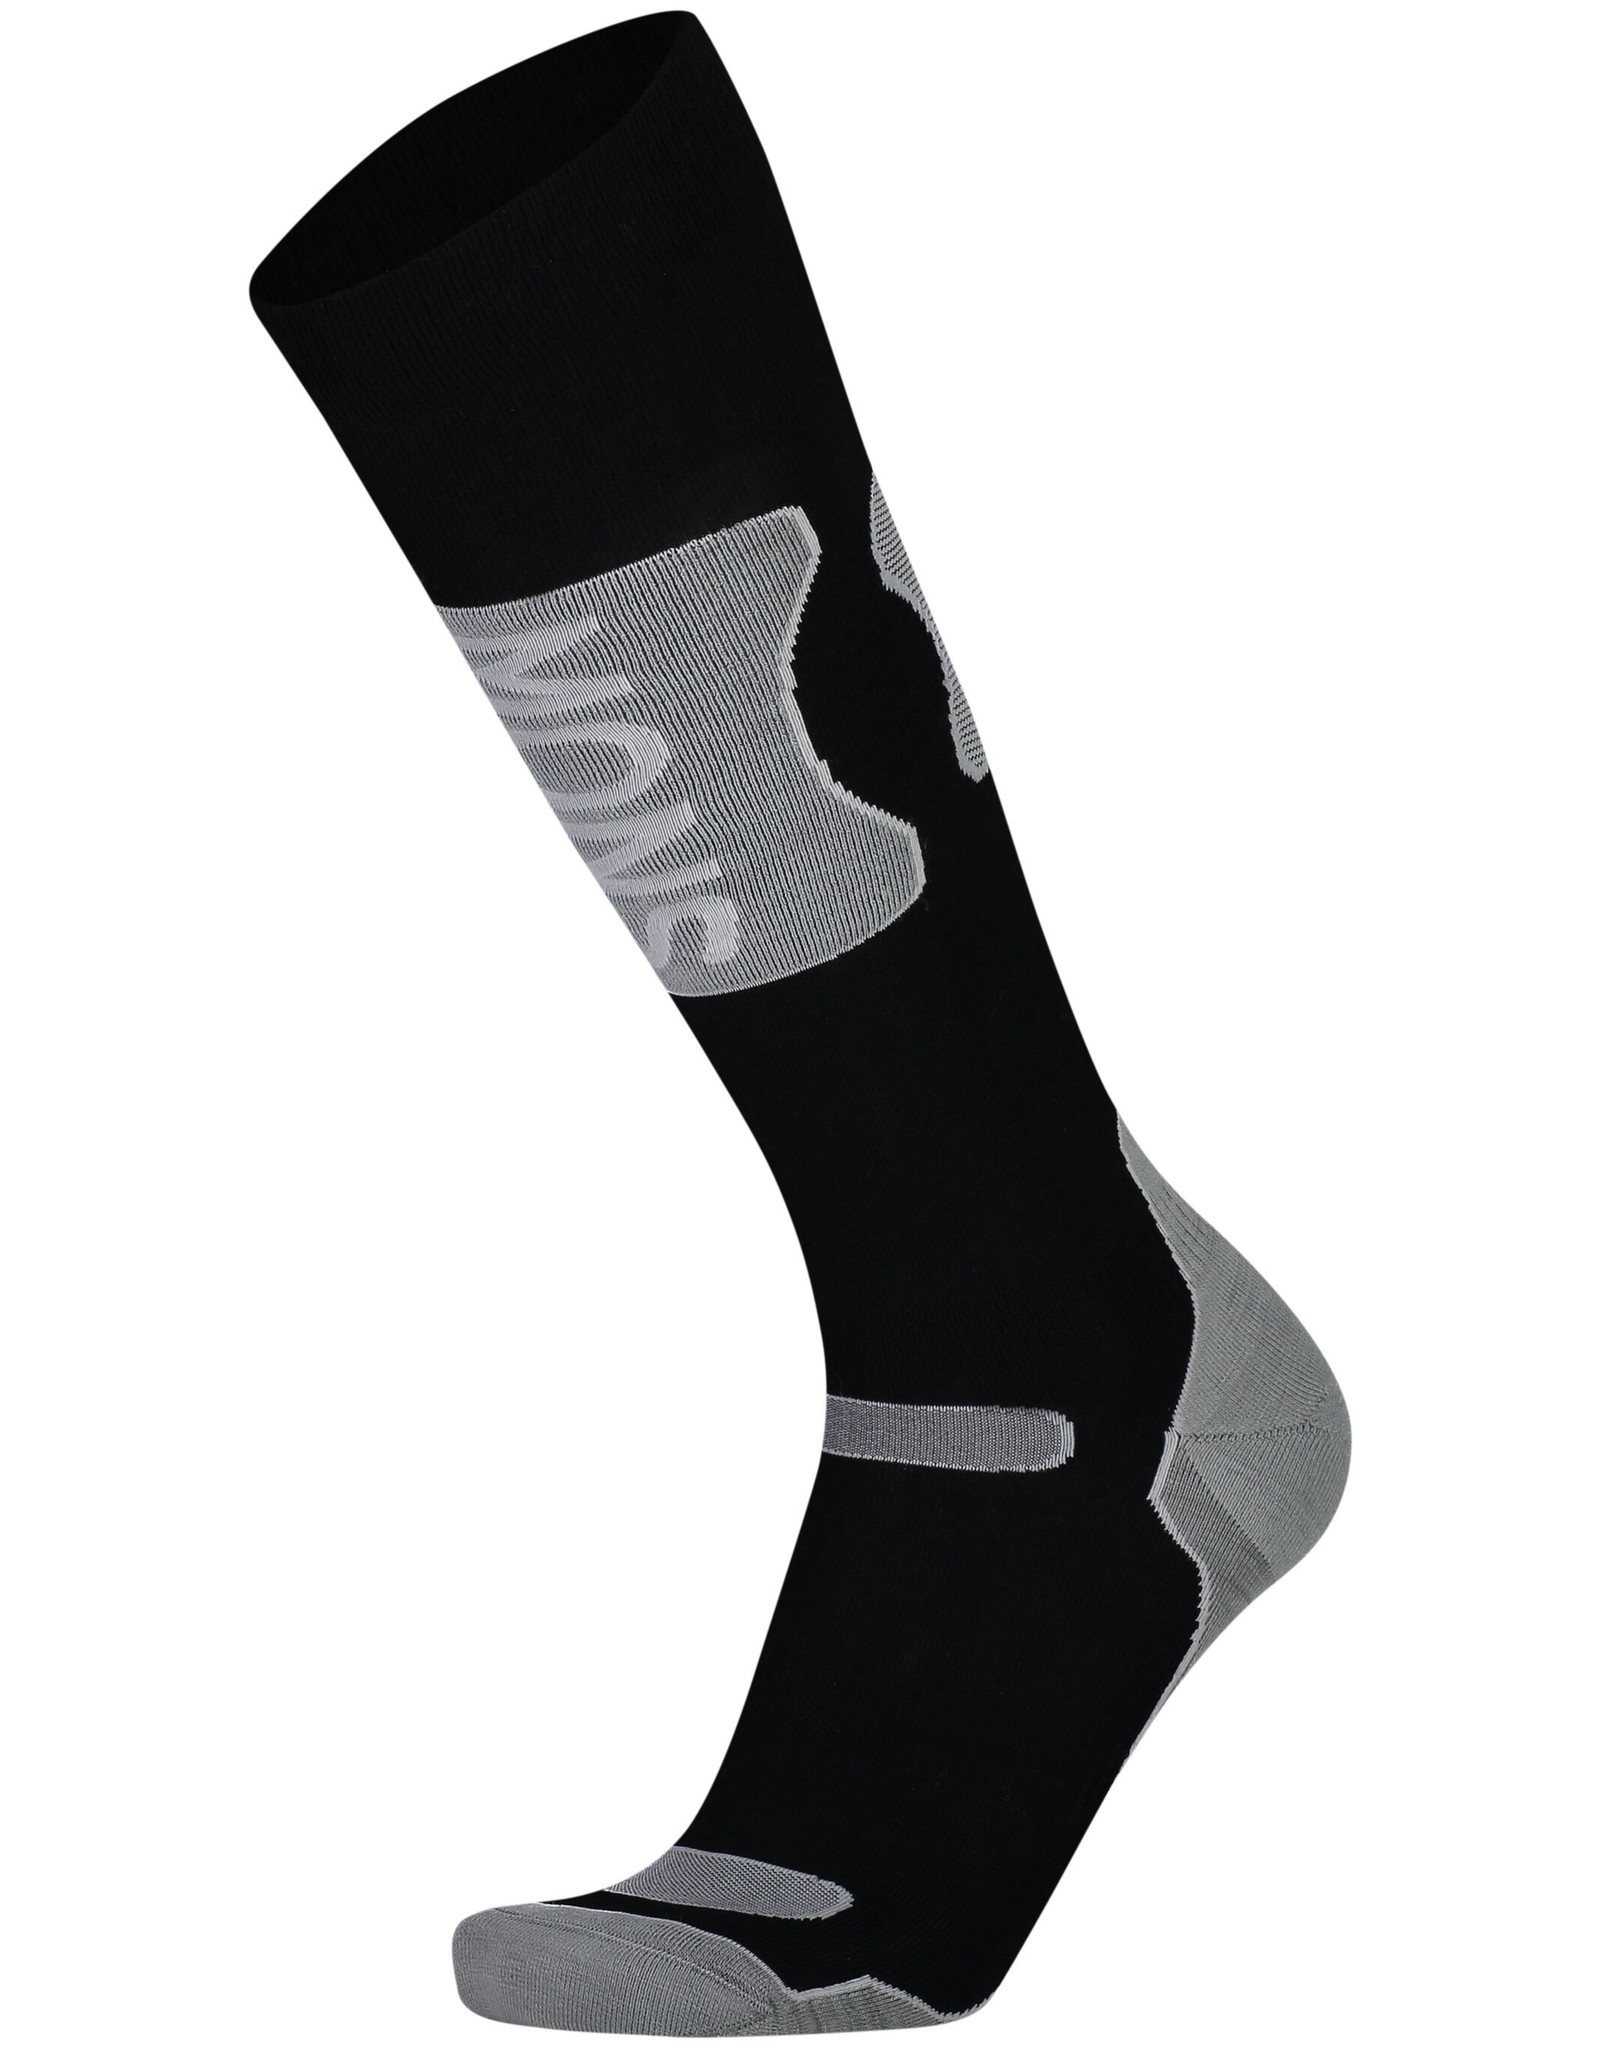 Mons Royale Mons Royale Pro Lite Tech Sock Men's -W2020